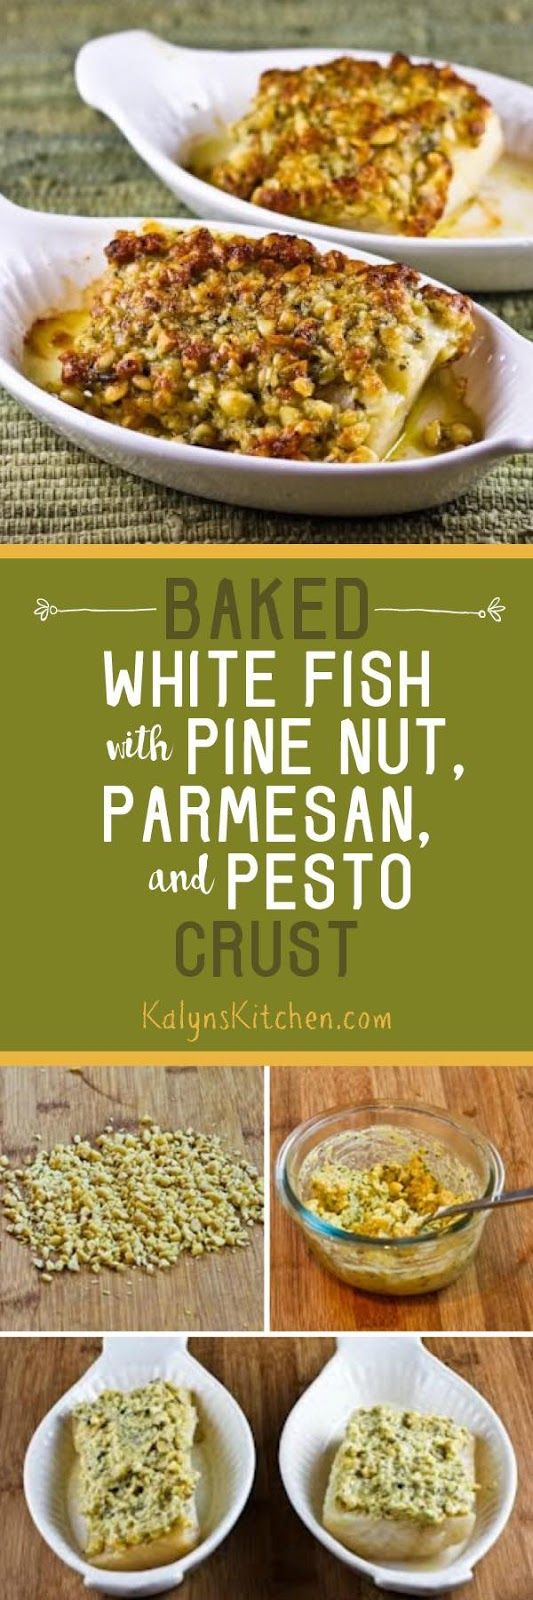 Baked White Fish with Pine Nut, Parmesan, and Basil Pesto Crust is low-carb, Keto, low-glycemic, gluten-free, and South Beach Diet friendly, and it's special enough to serve to guests. I promise, no one will remotely think of this as diet food! [found on KalynsKitchen.com]